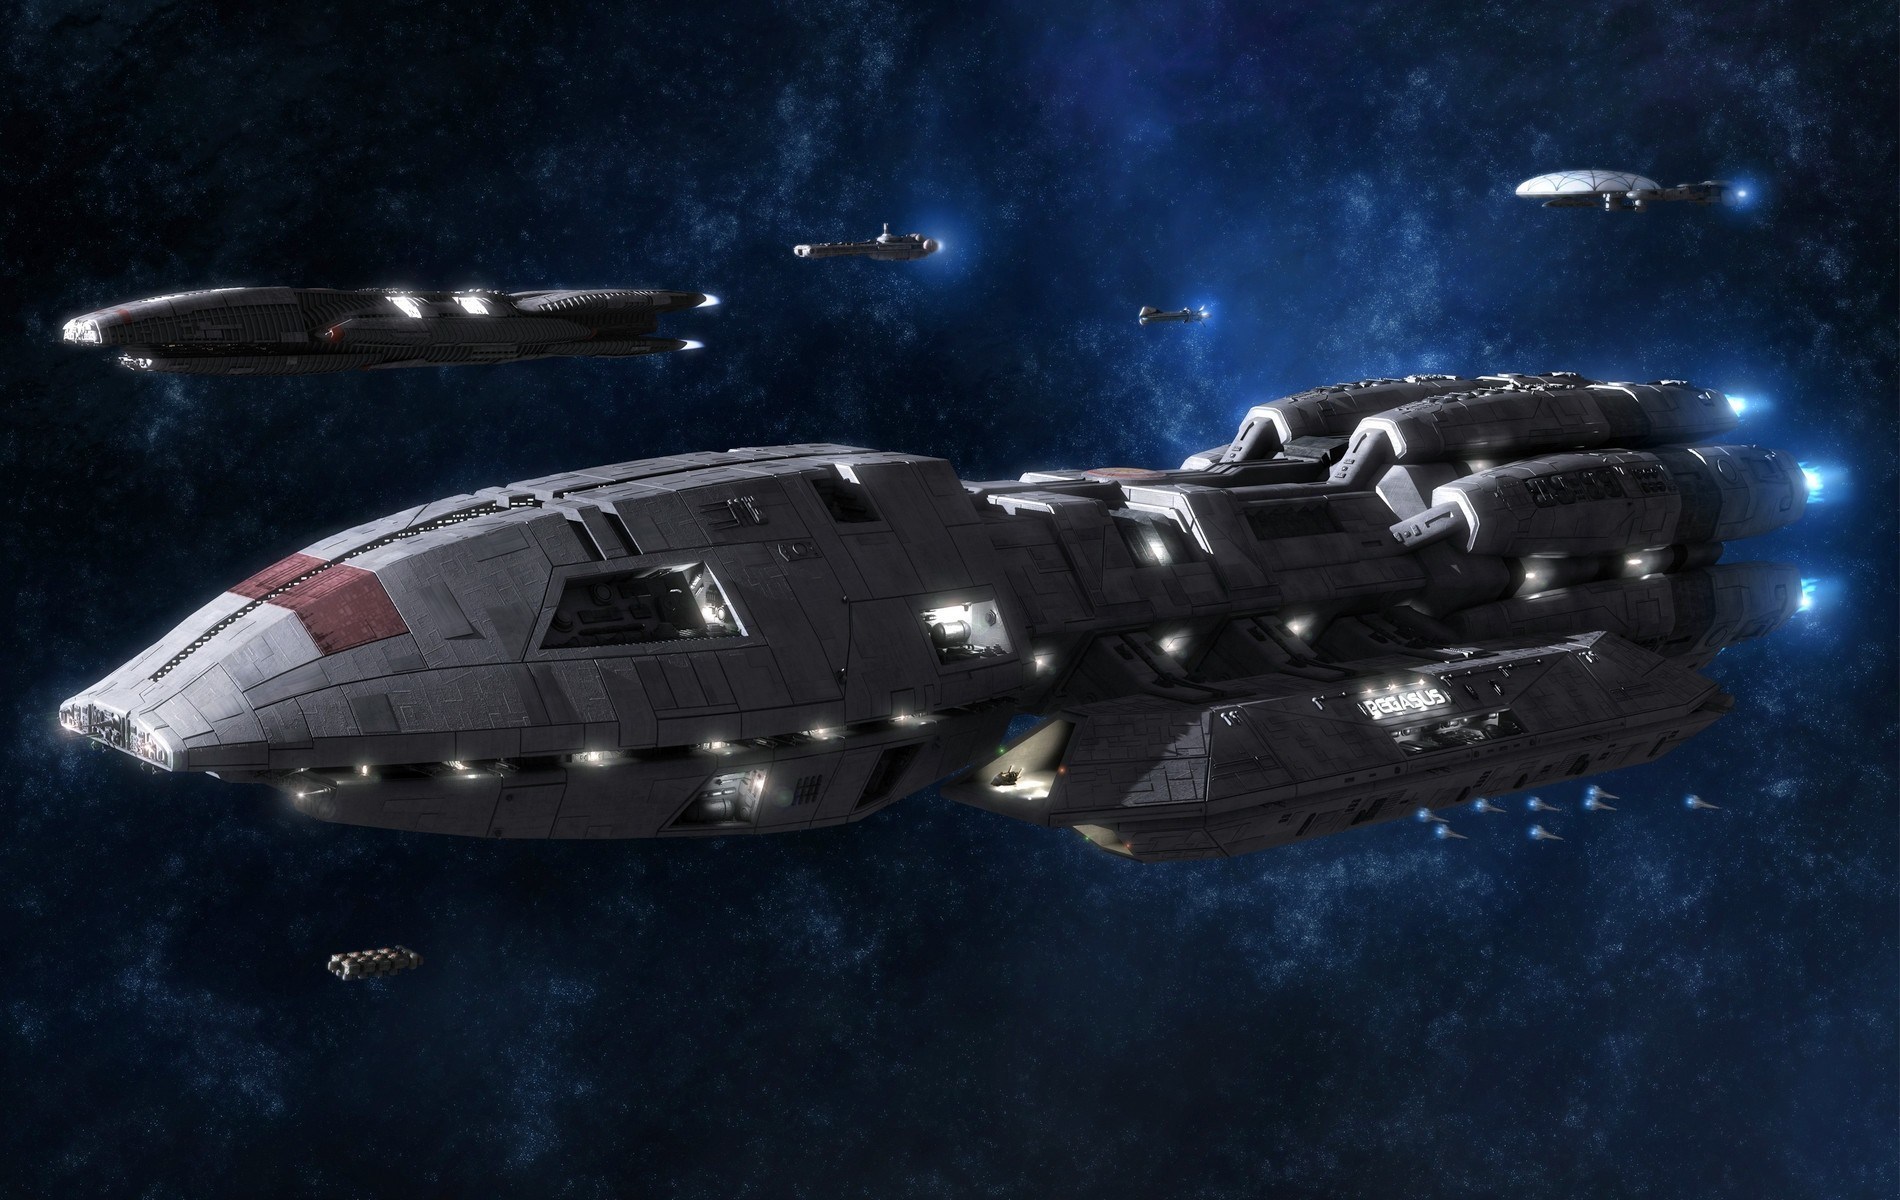 battlestar galactica Viper spaceships HD Wallpaper